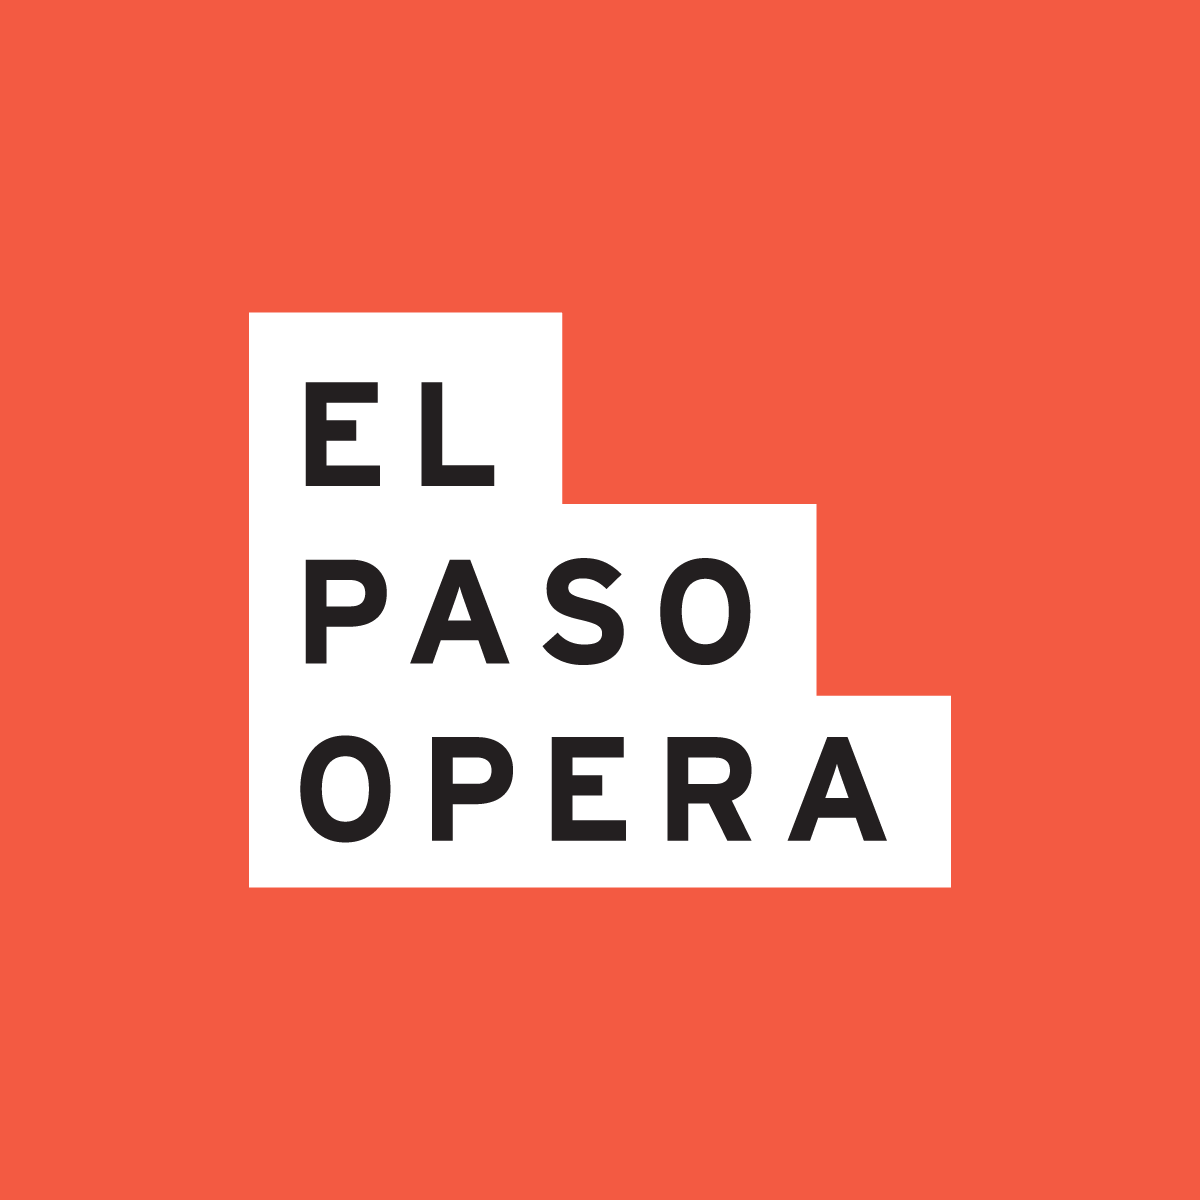 New Logo and Identity for El Paso Opera by Mast